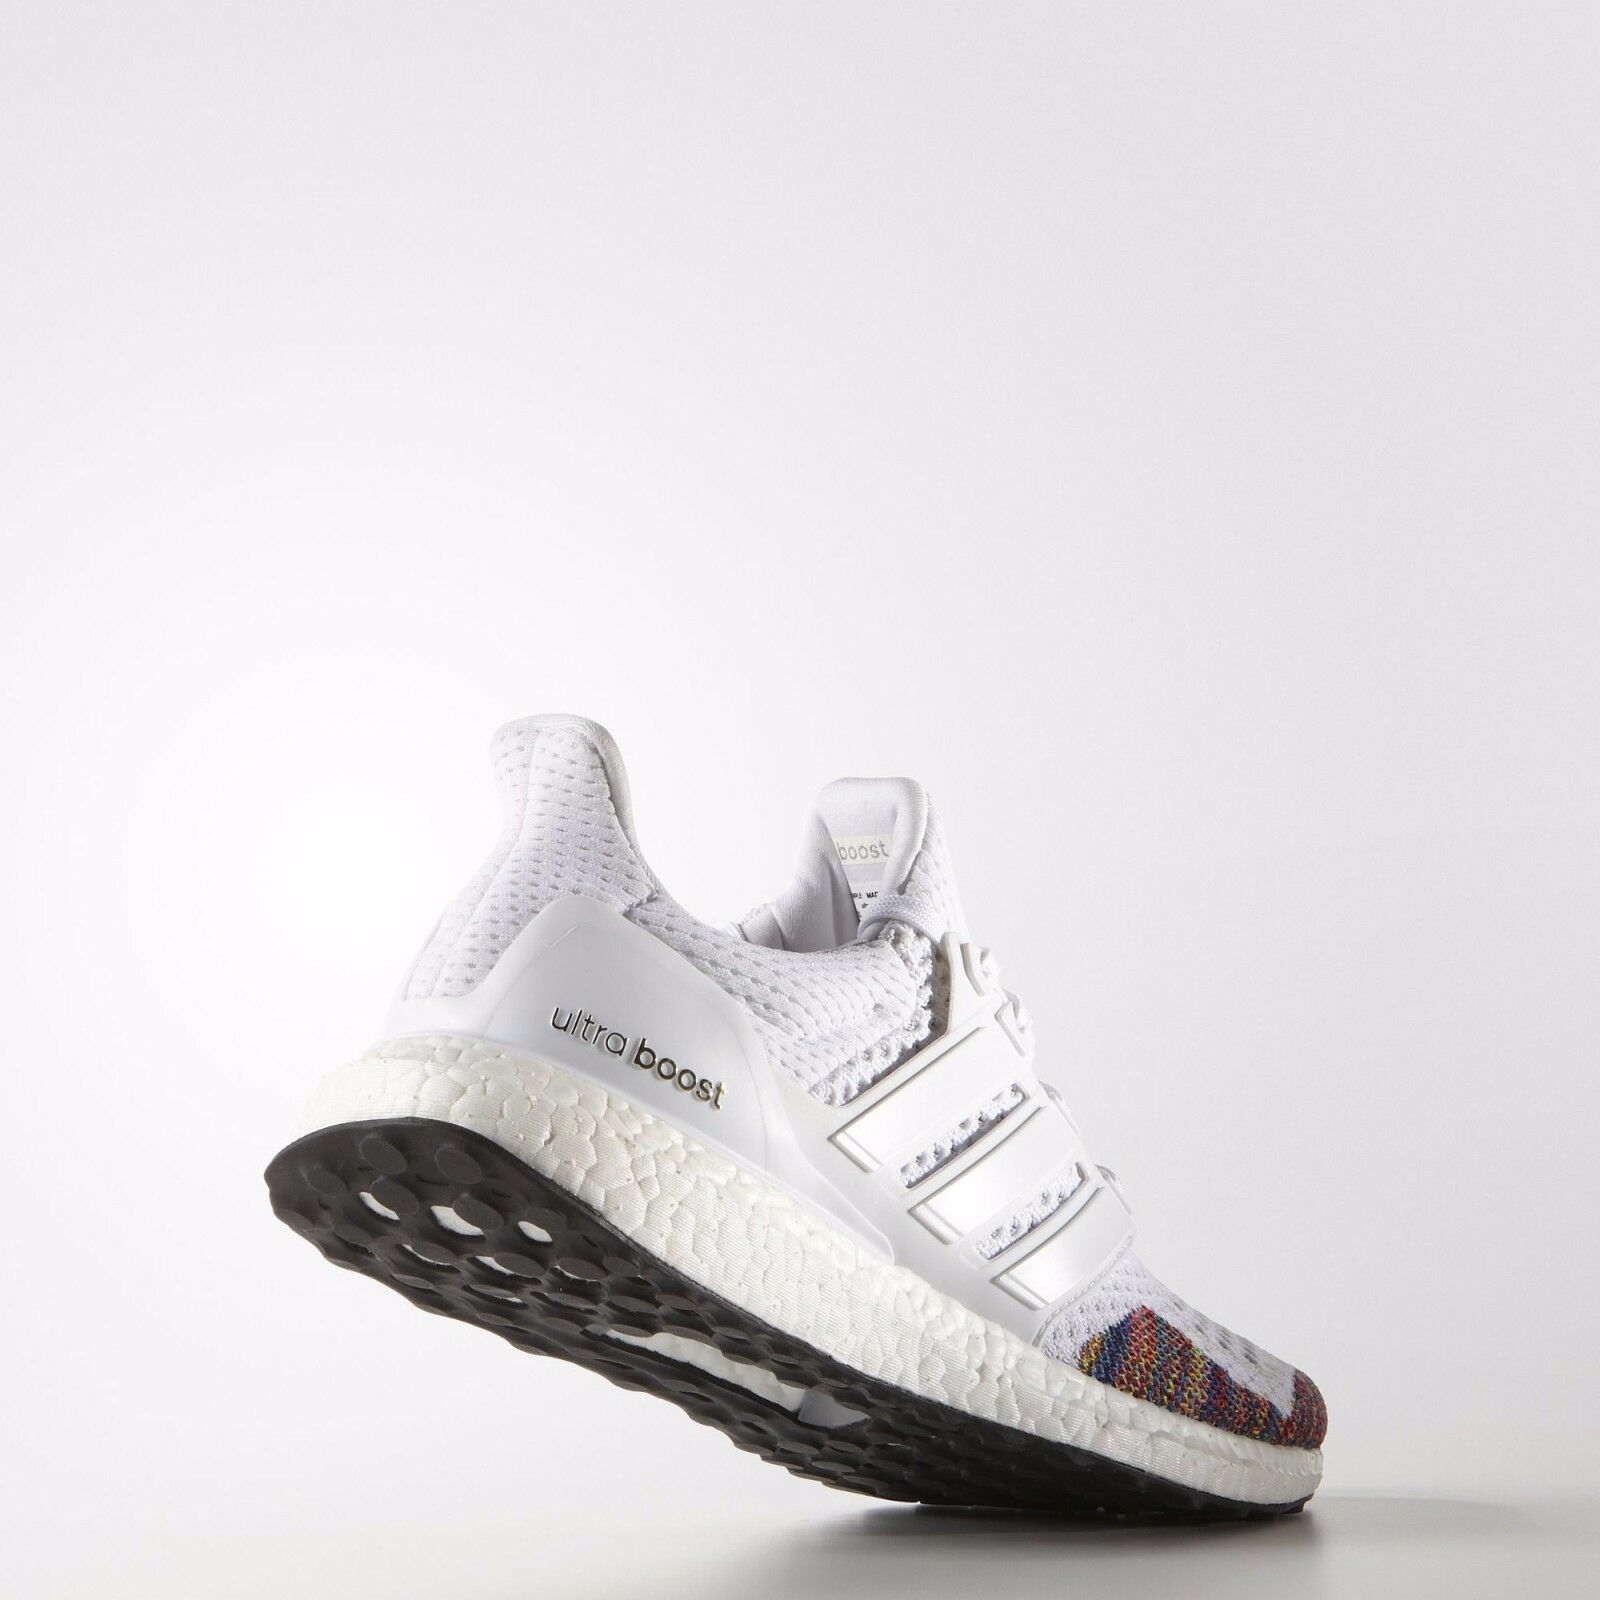 c5ead4d58331a netherlands adidas ultra boost limited ltd shoes aq5558 running rare  limited boost edition yeezy kanye 7dba20 ...